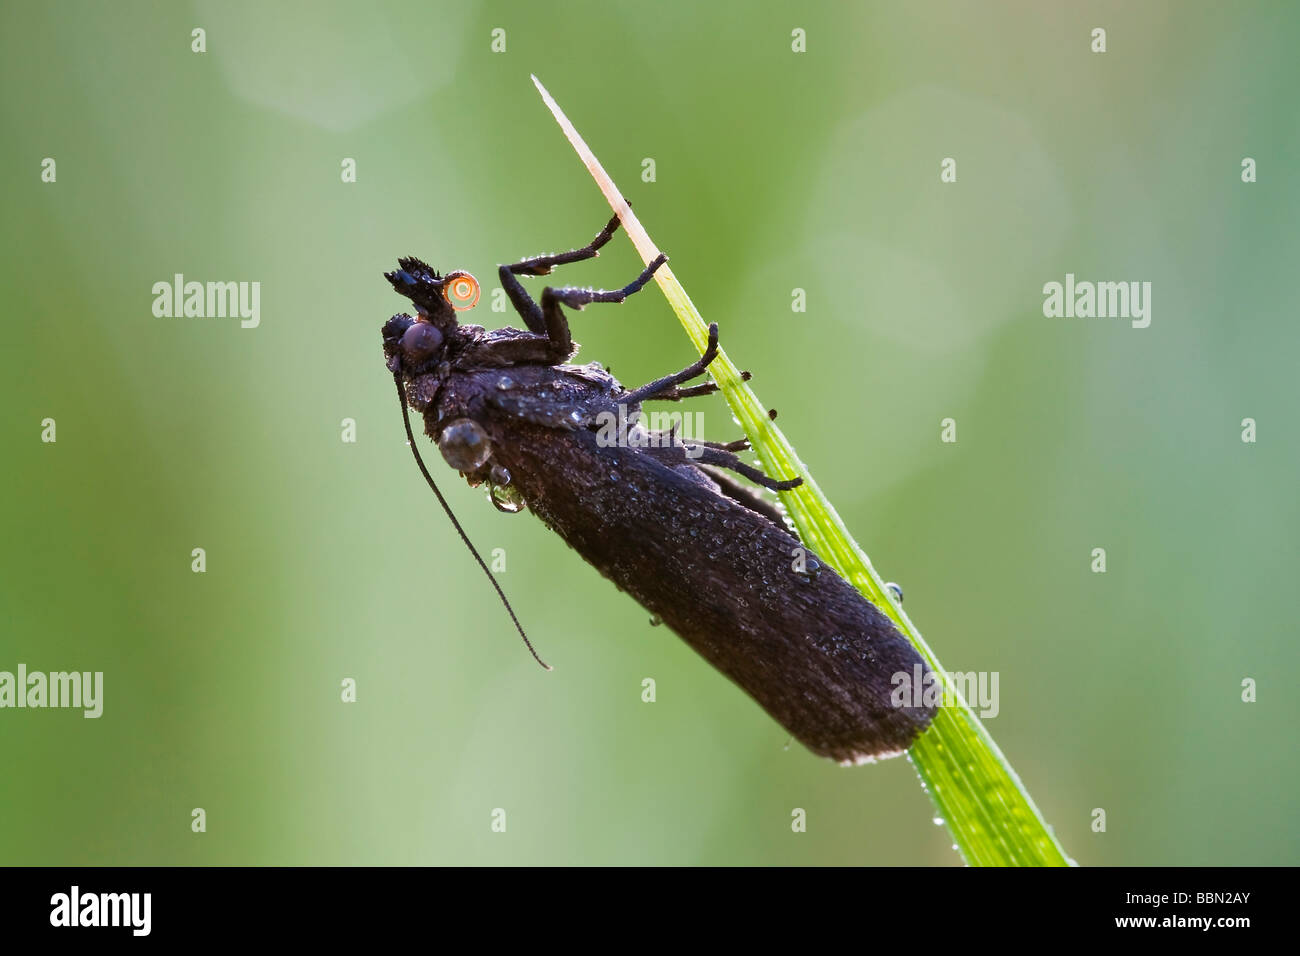 Butterfly iwith morning dew on a blade of grass - Stock Image